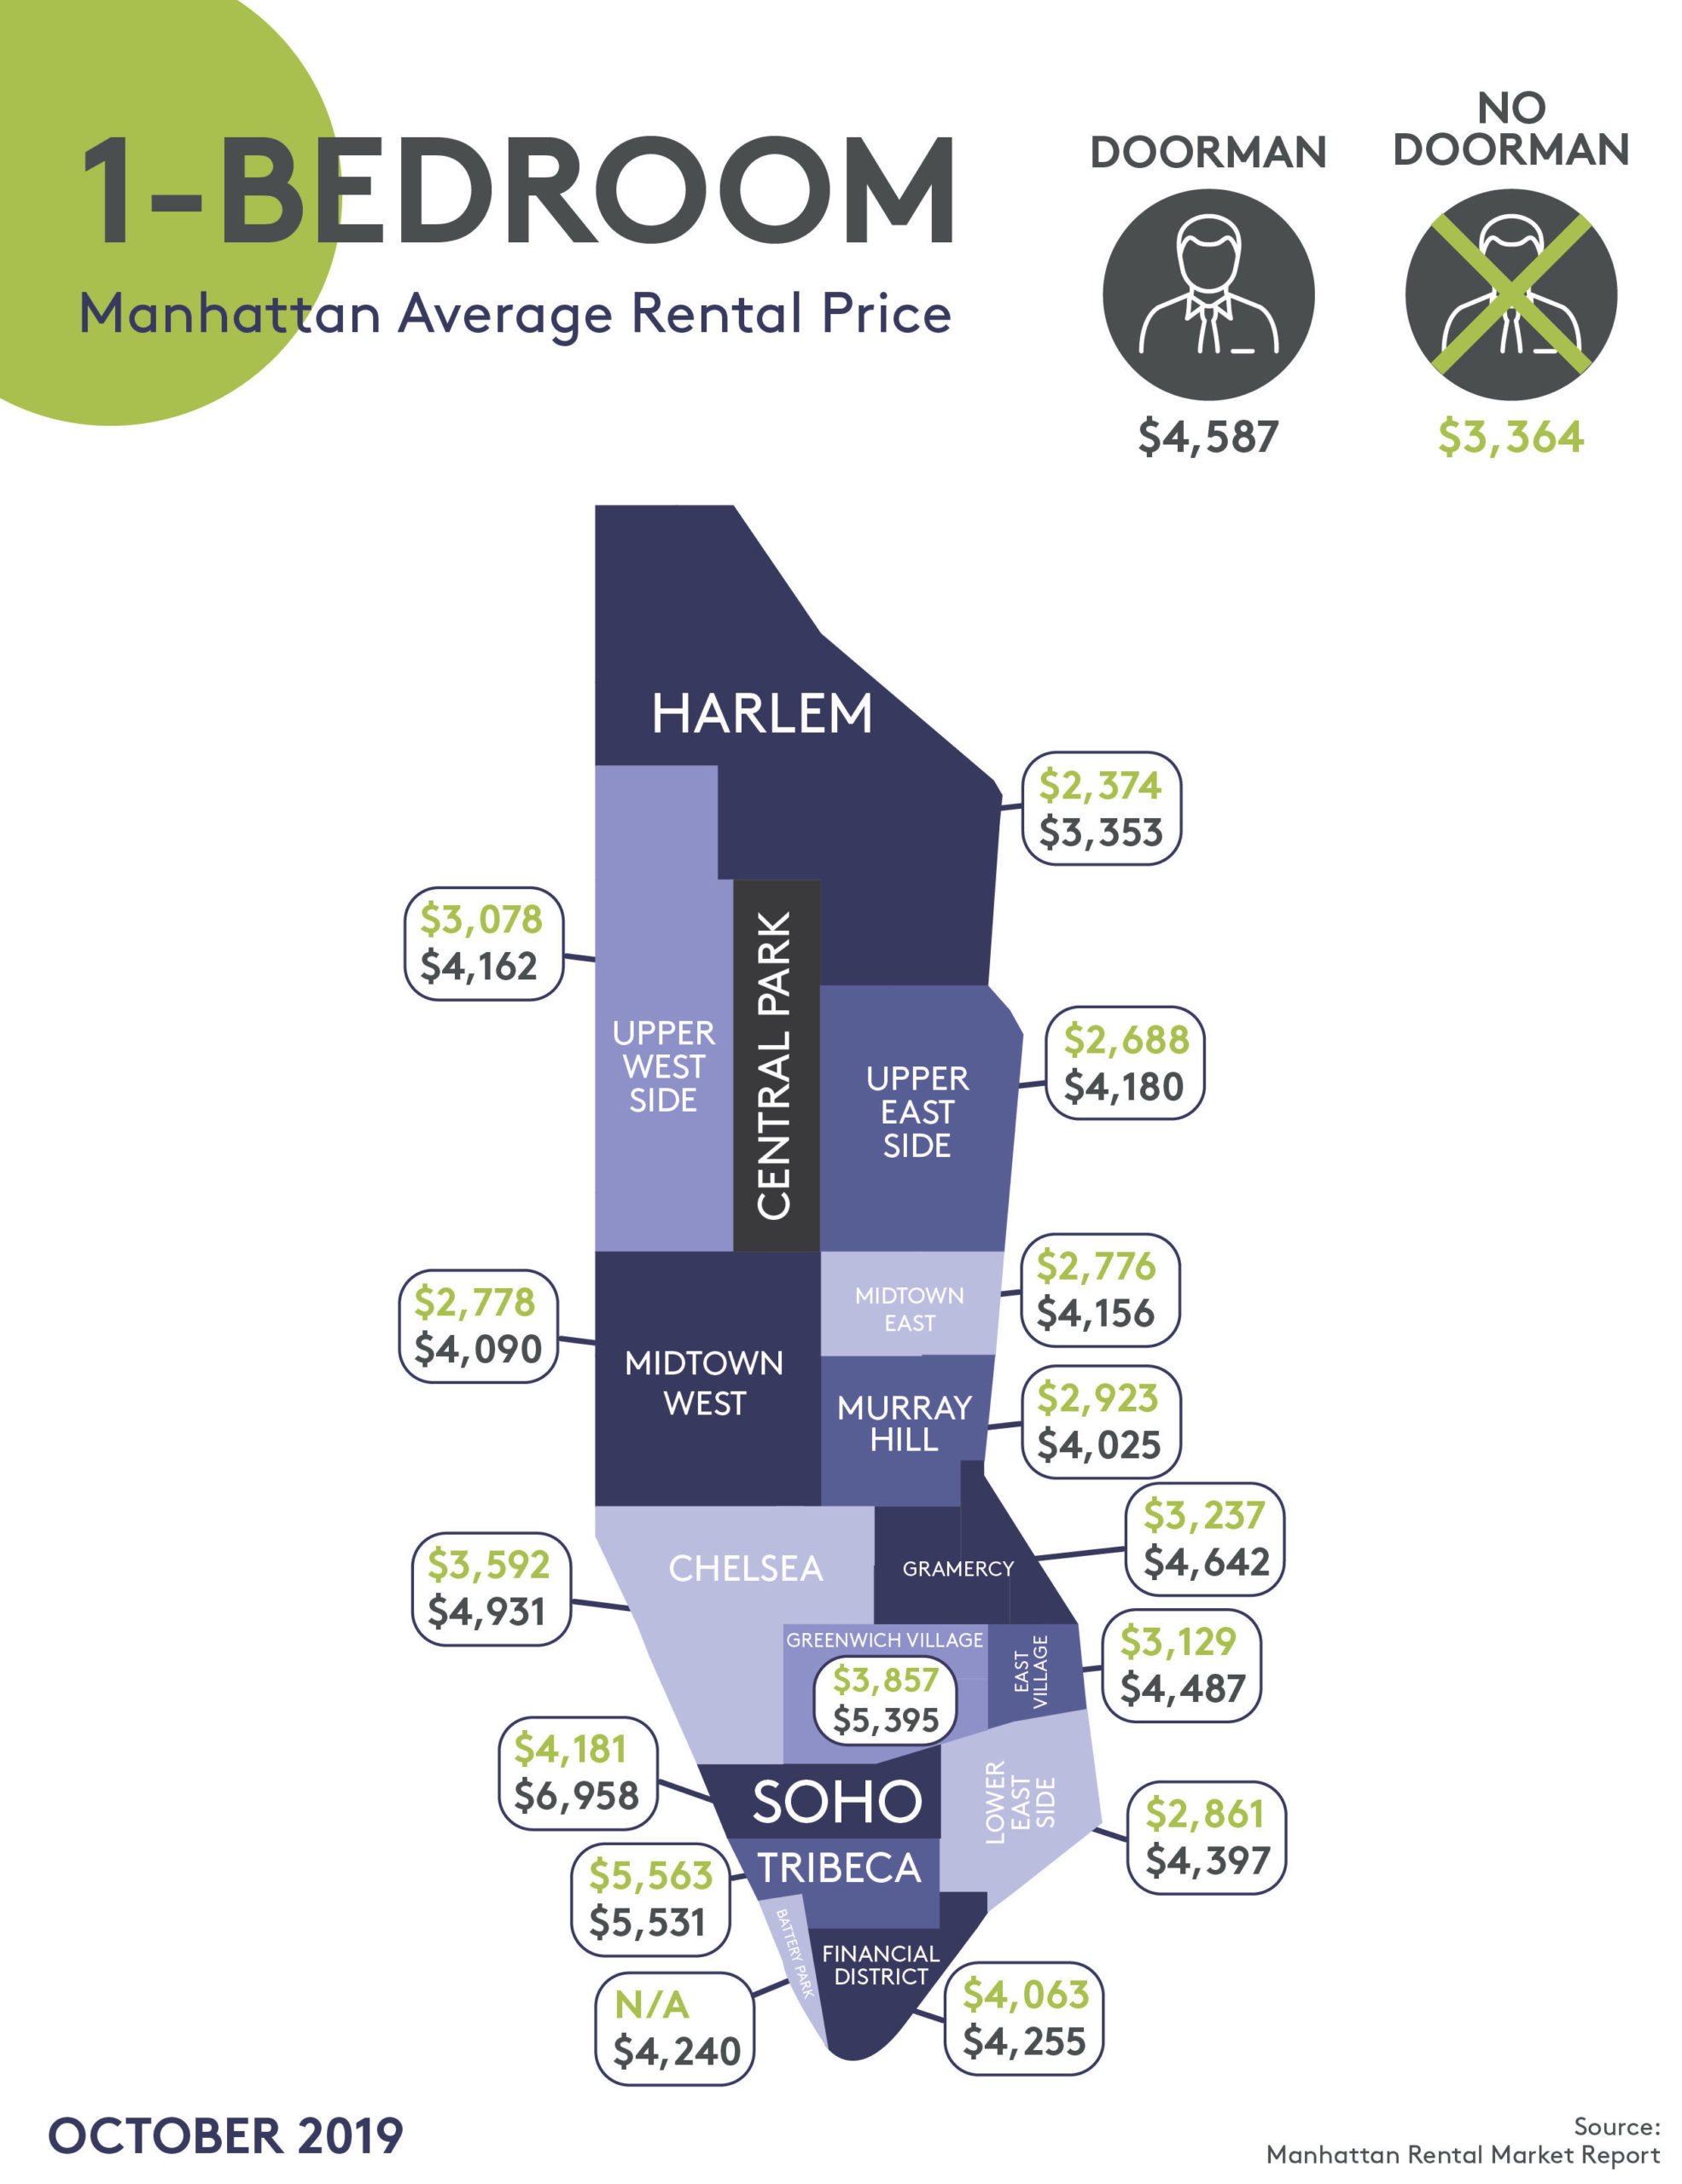 Prices for 1-bedroom apartments in Manhattan